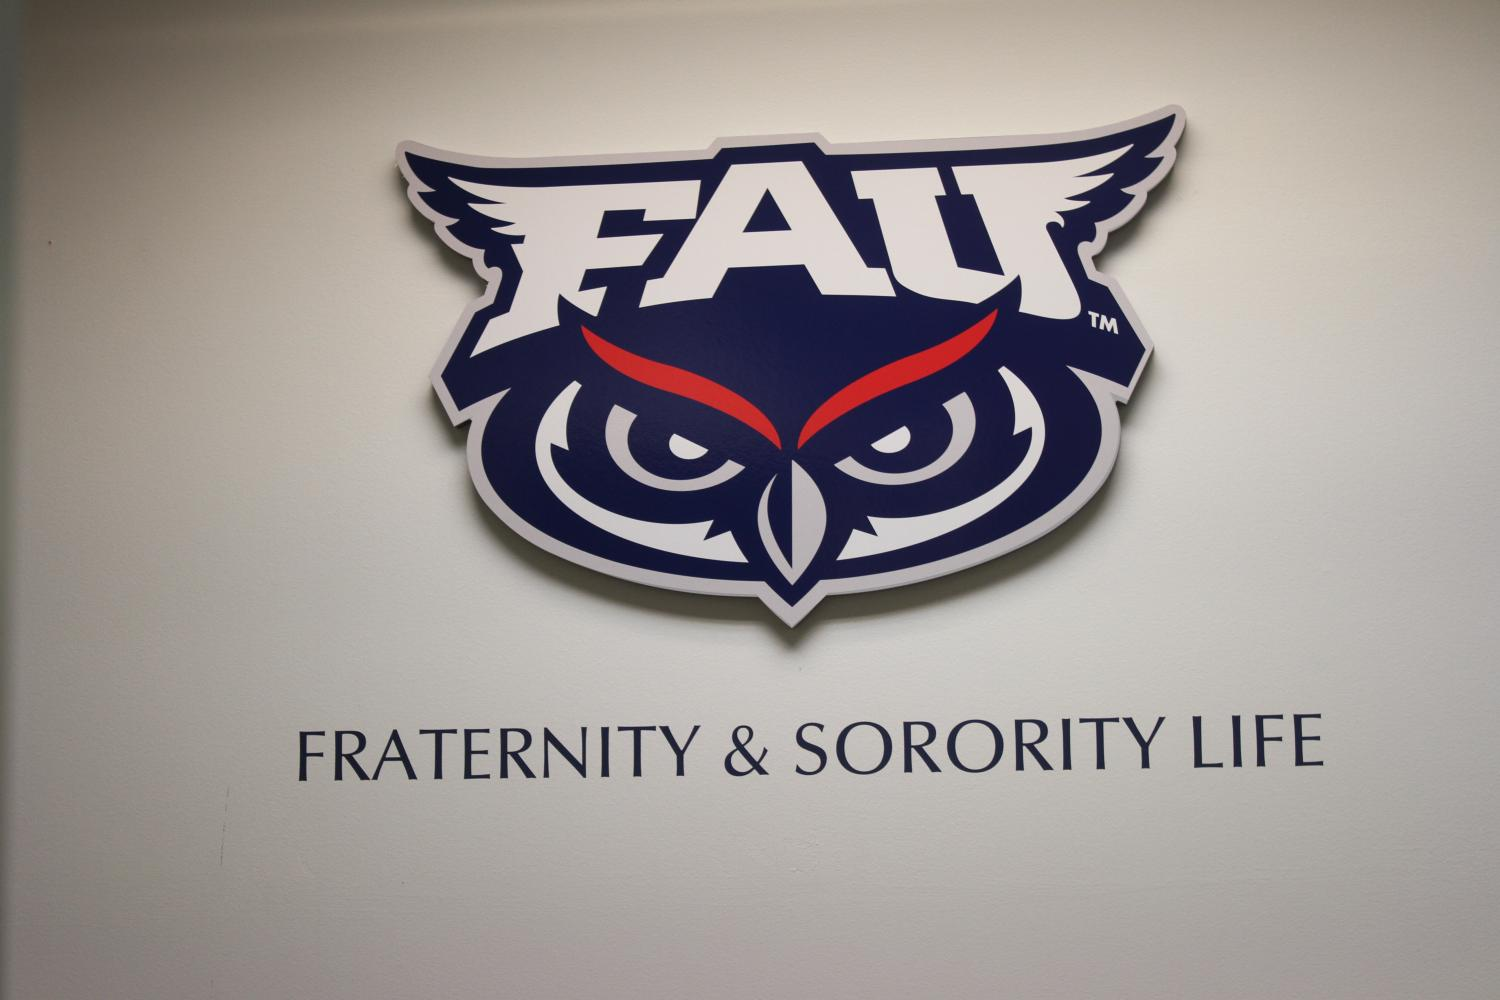 The+Office+of+Fraternity+and+Sorority+Life+logo+on+the+second+floor+of+the+Student+Union.+Photo+by+Joe+Pye+%7C+Editor+in+Chief